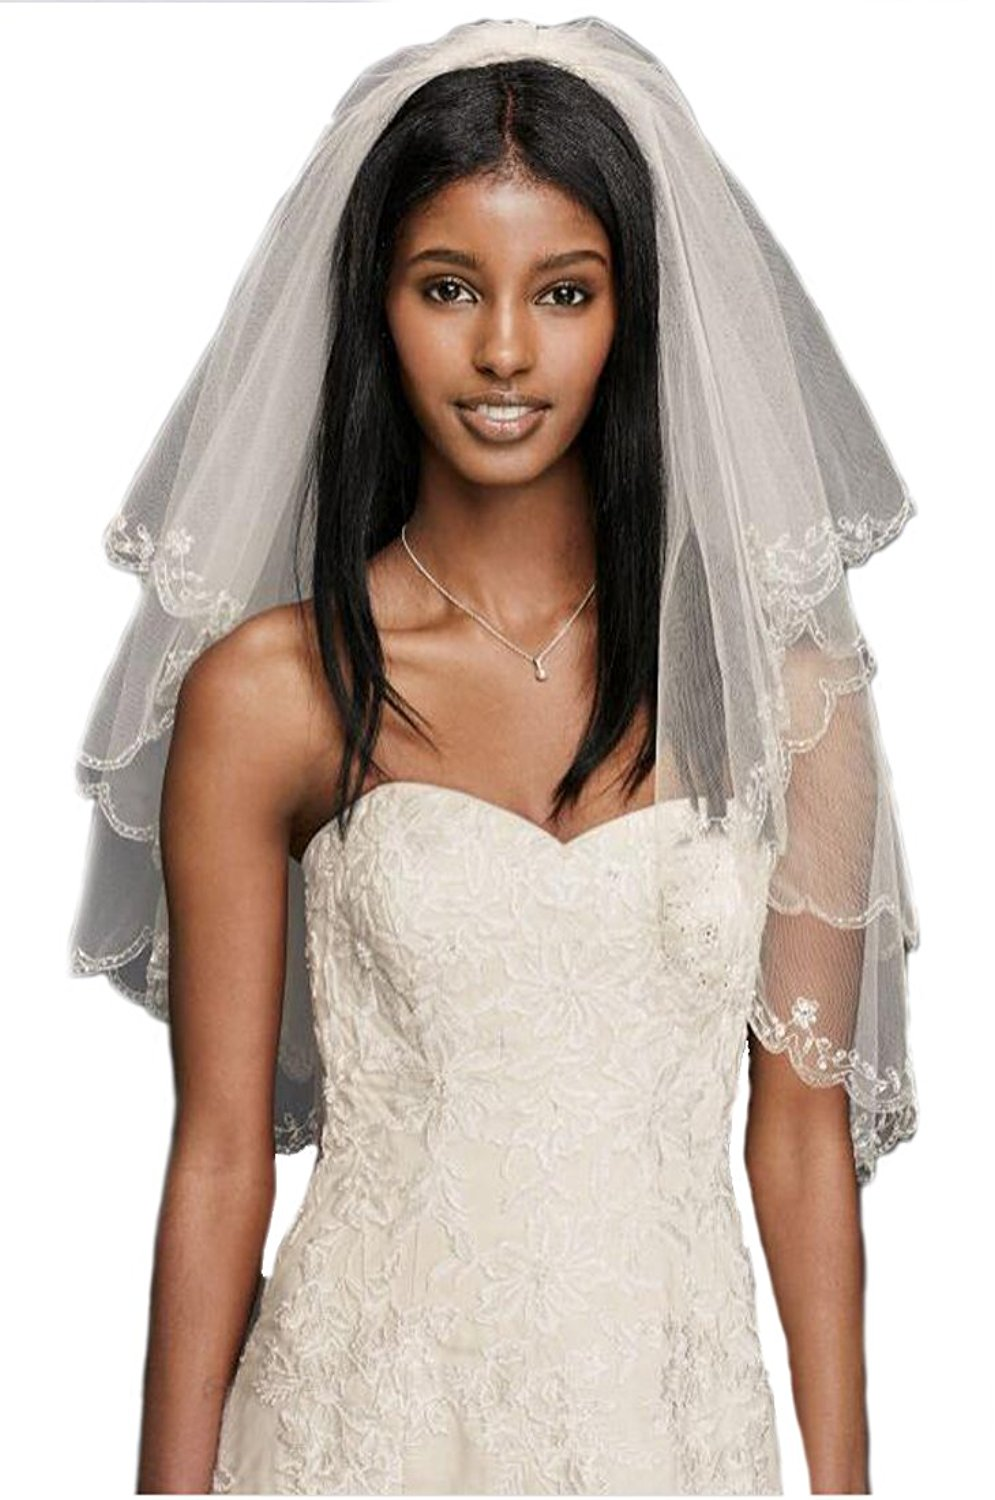 Liveinu Womens Elbow Beaded Edge Pearl Sequins Wedding Bridal Veil